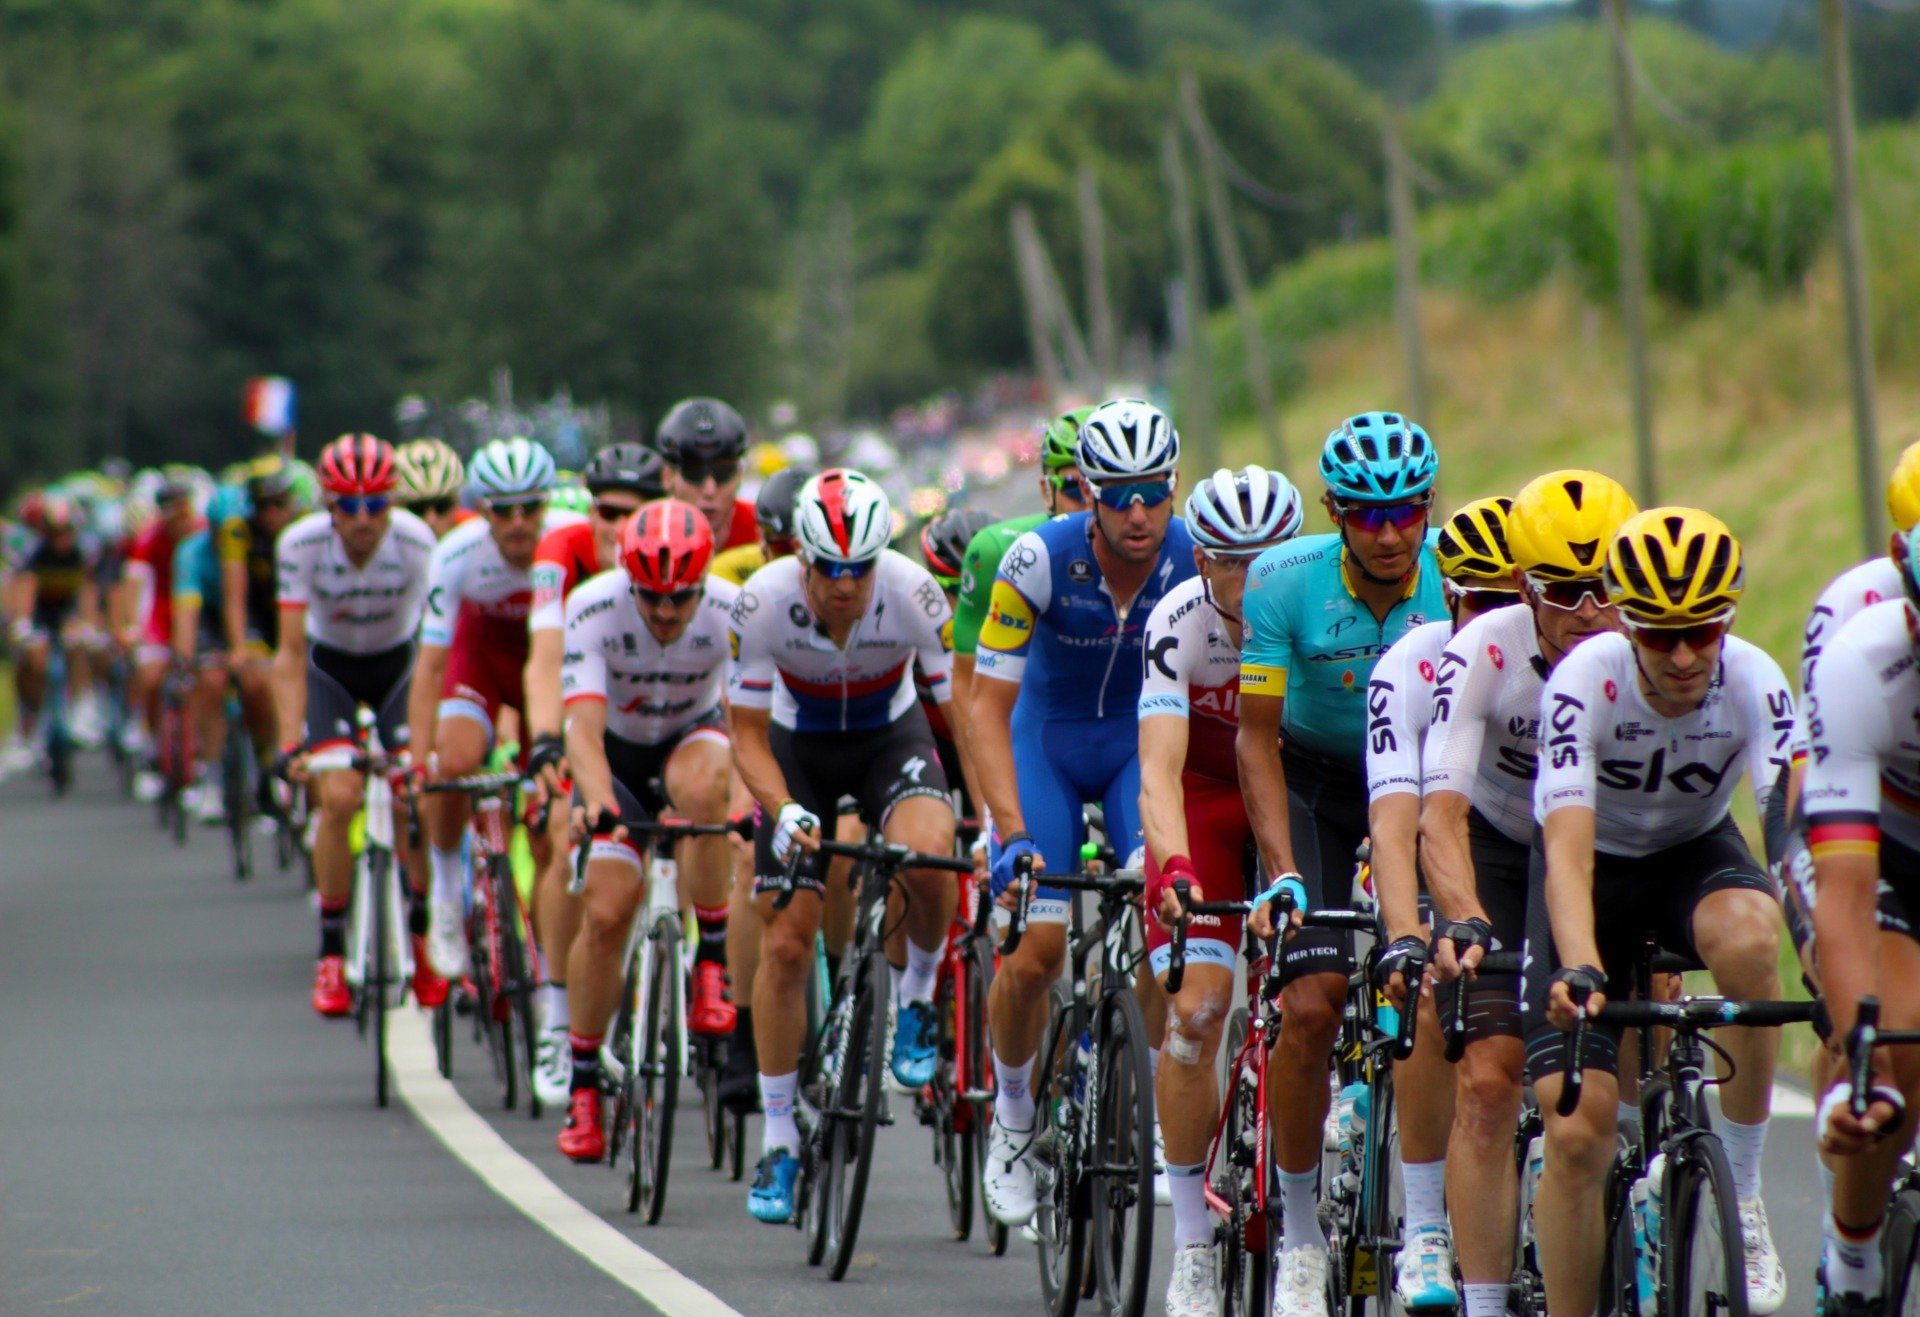 PTL Supplying Stage 3 Tour de France 2014!